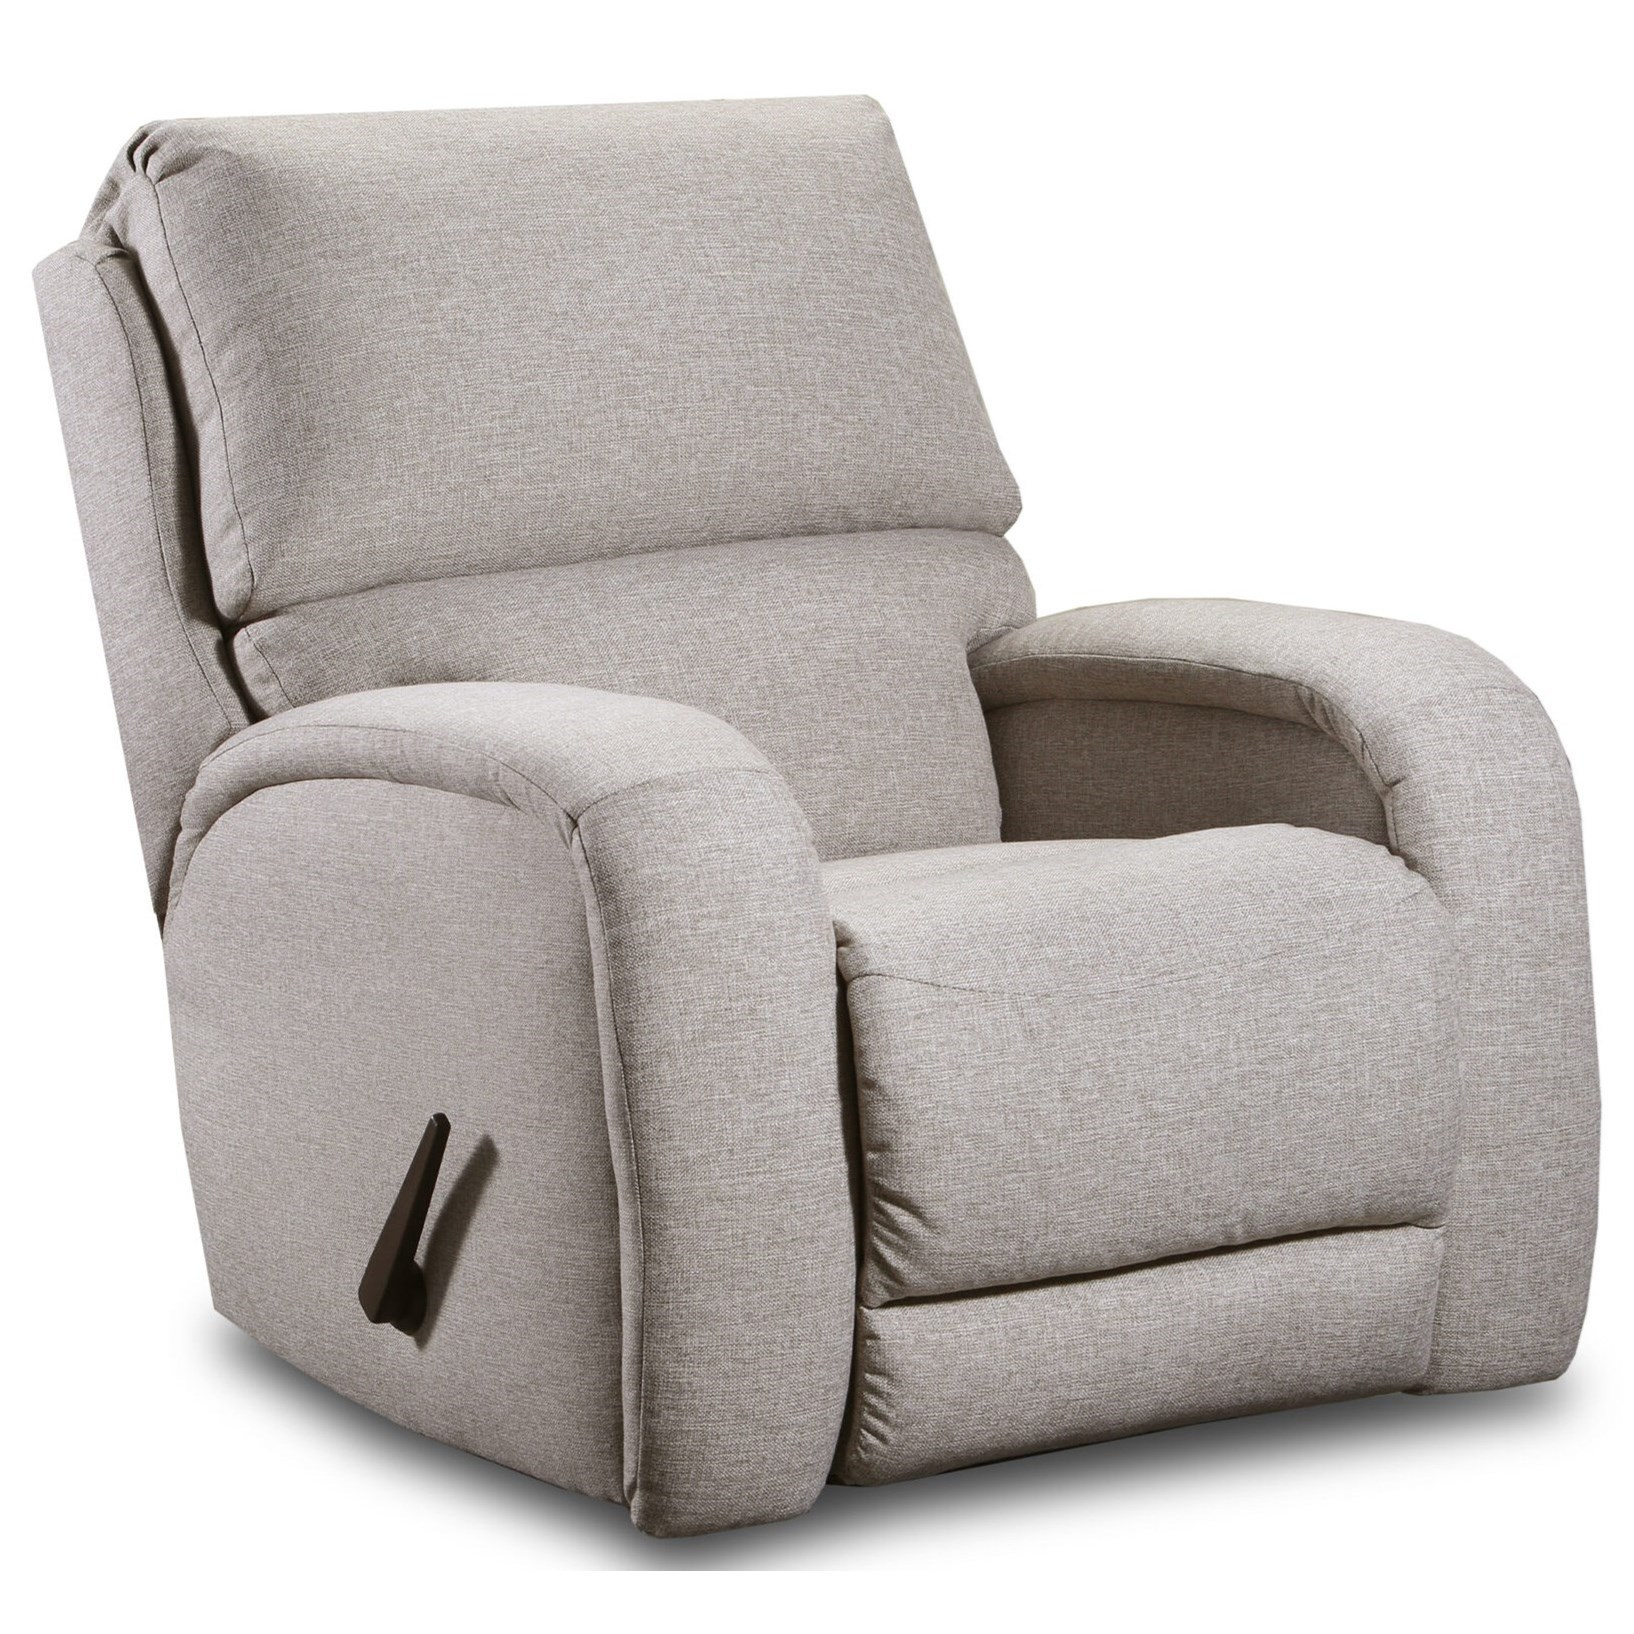 Fandango Rocker Recliner  by Southern Motion at Fashion Furniture